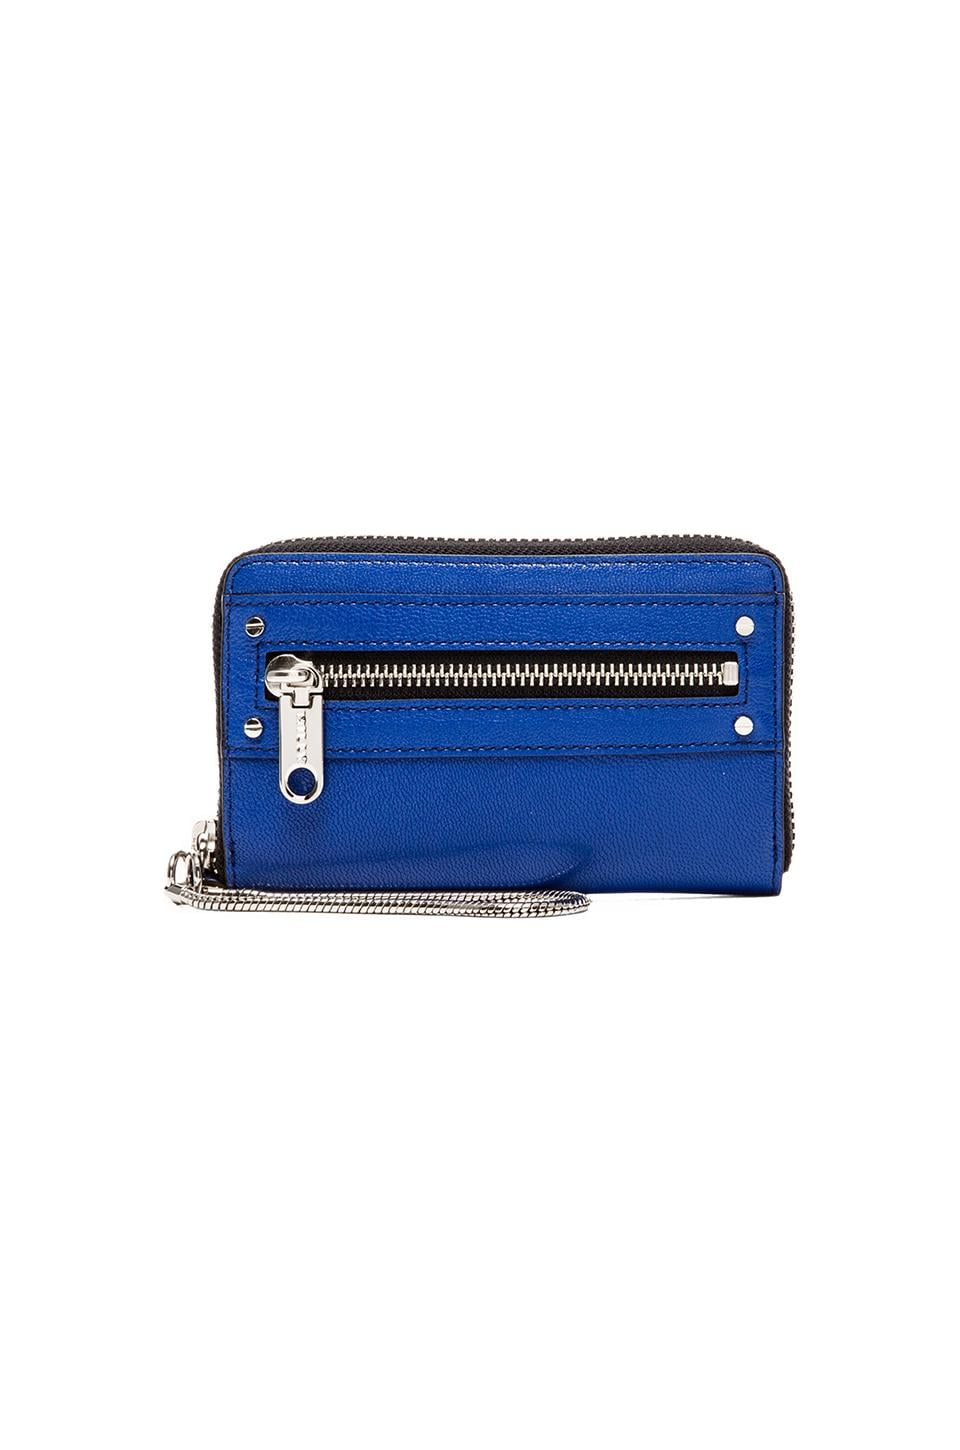 MILLY Riley Collection Smart Phone Wristlet in Blue